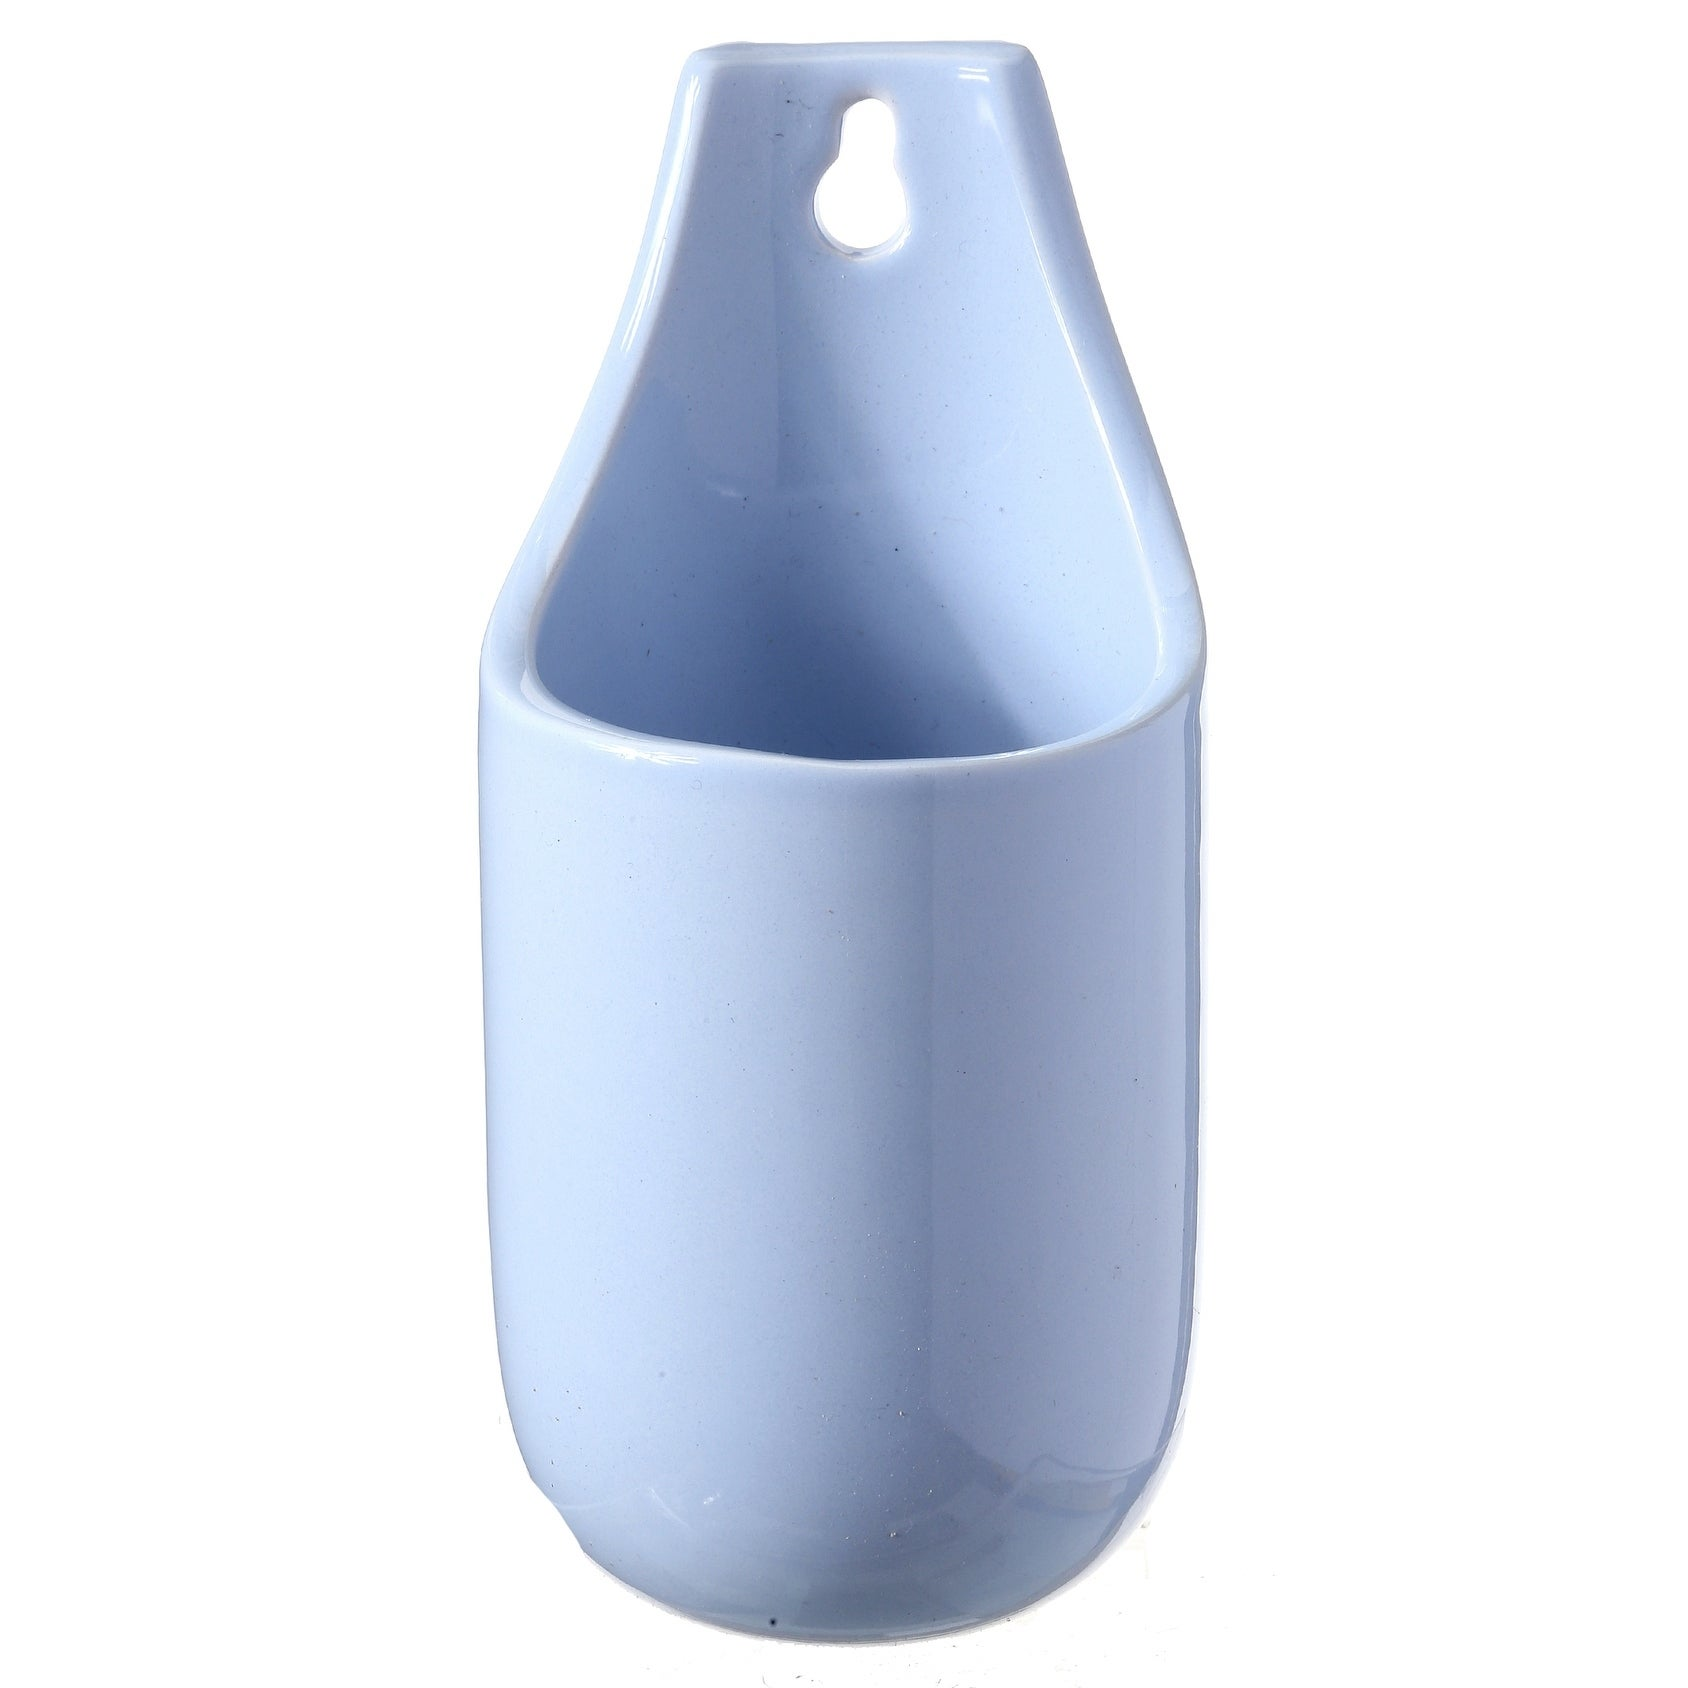 Ceramic Rounded with Curved Bottom Wall Pocket 7 x 3 D (Ceramic - Blue)